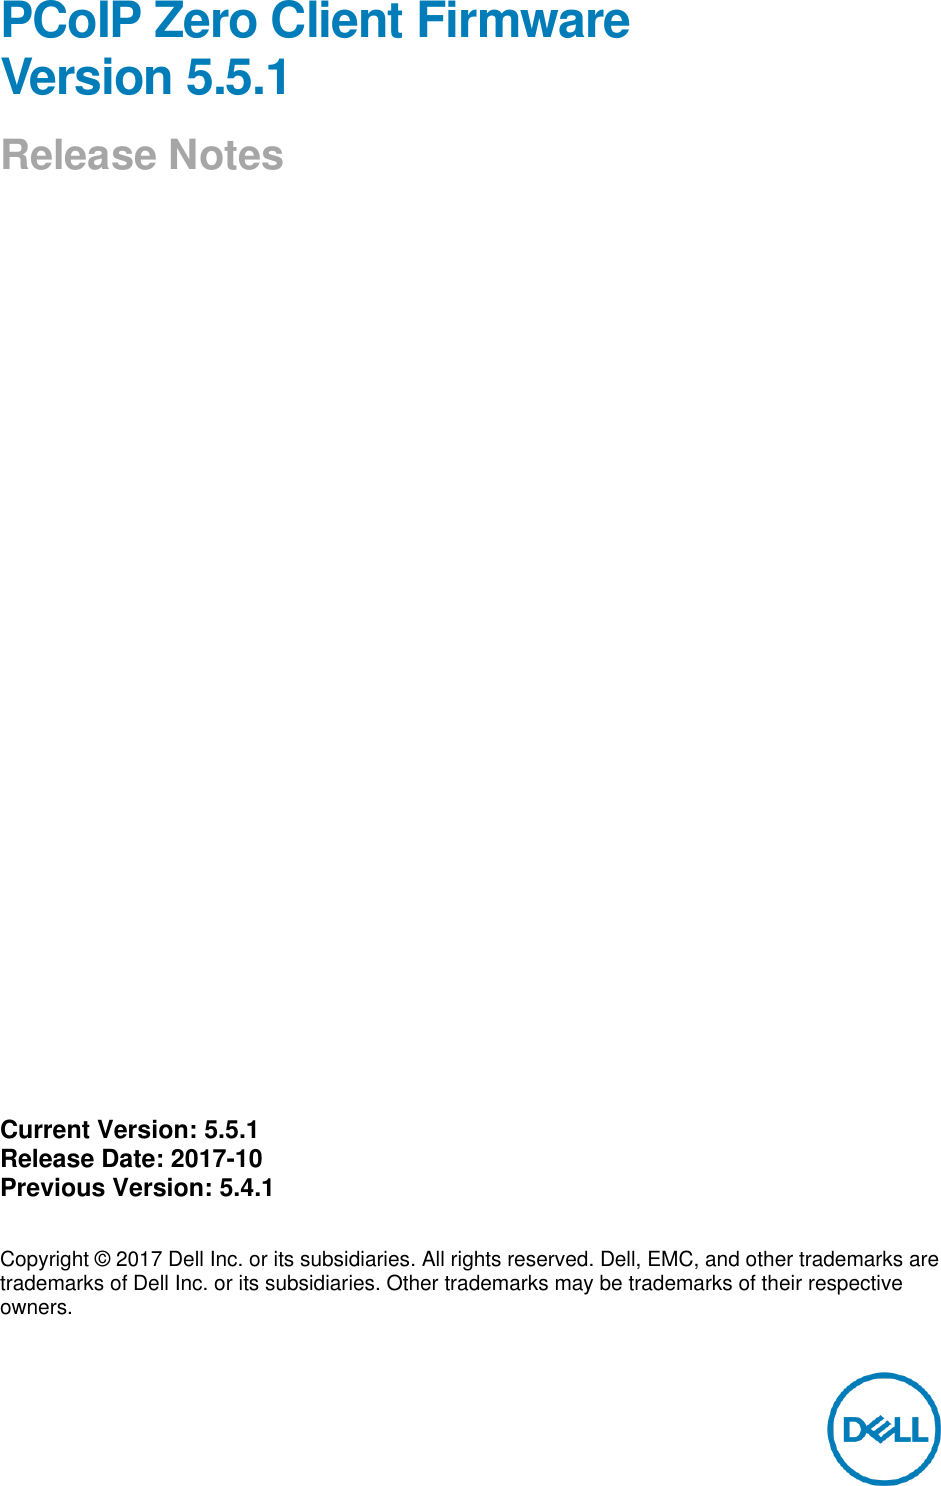 Dell Wyse p25 PCoIP Zero Client Firmware Version 5 5 1 Release Notes